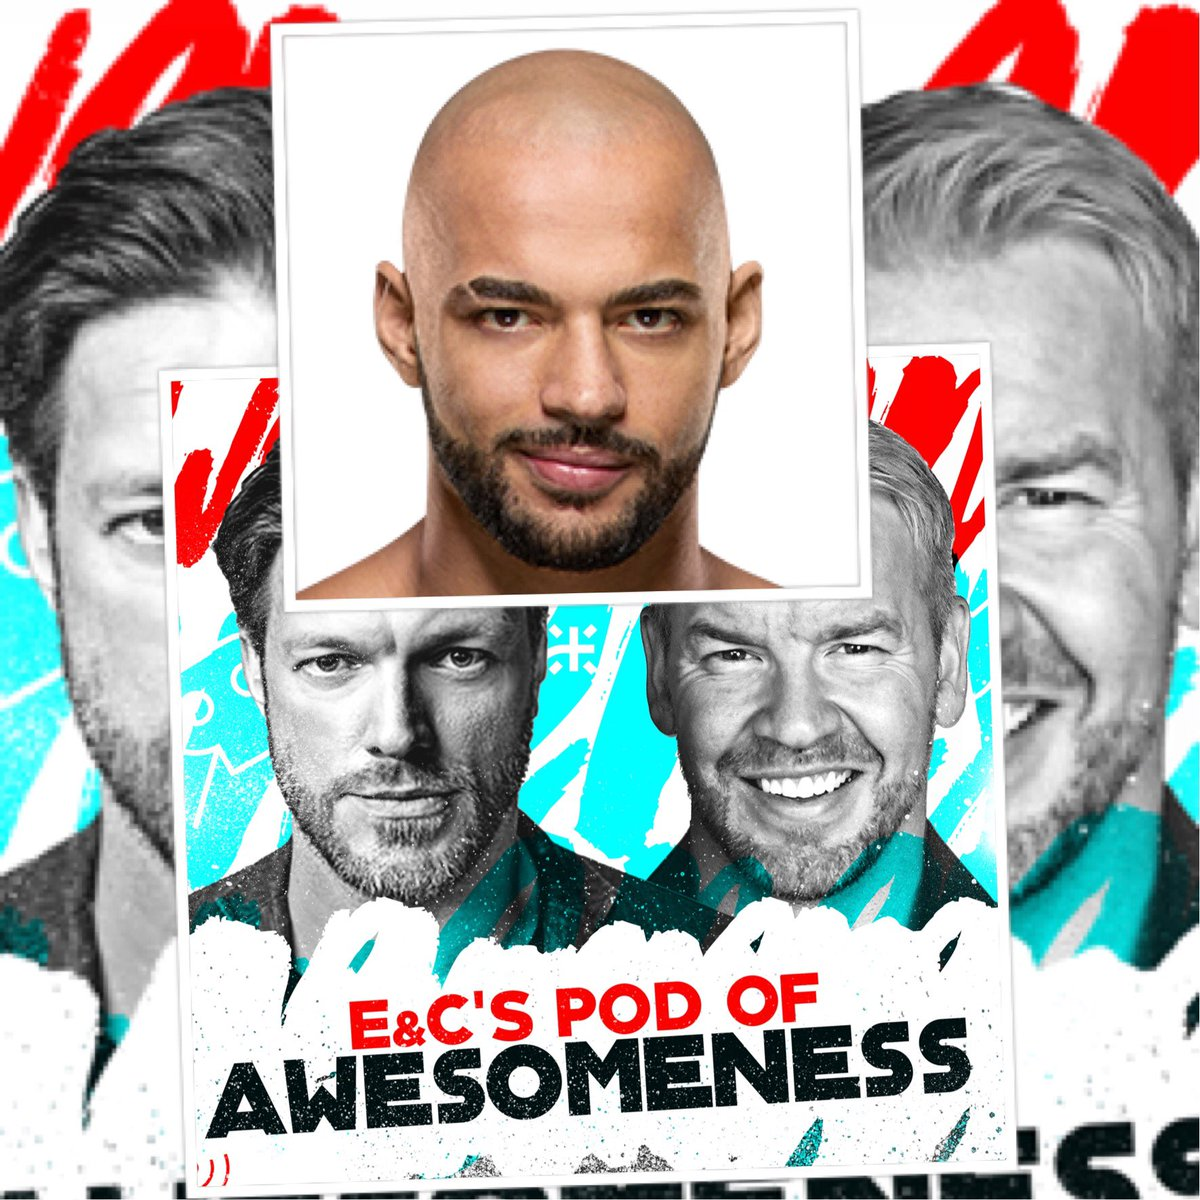 Now on @EandCPod we Ricochet Strap(see what I did) The One and Only @KingRicochet Also @THETOMMYDREAMER with #tales and an impromptu run in by Lenny Dykstra. Weird. Also Flip Sunset graces is with his presence and he's an a$$hole